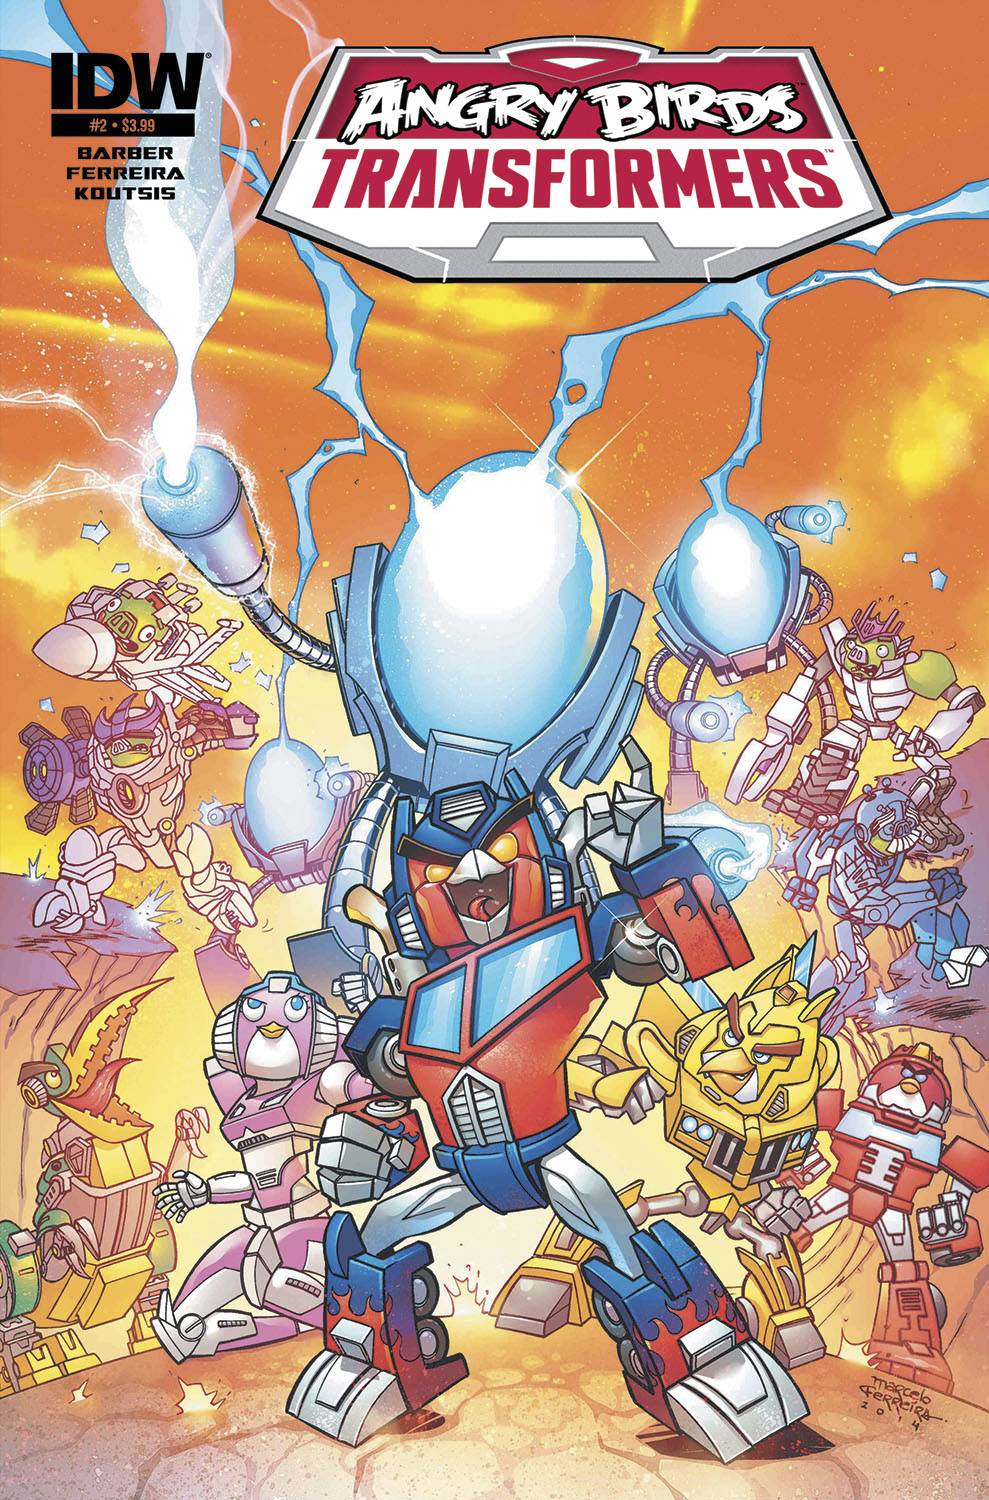 Angry Birds Transformers Issue 2